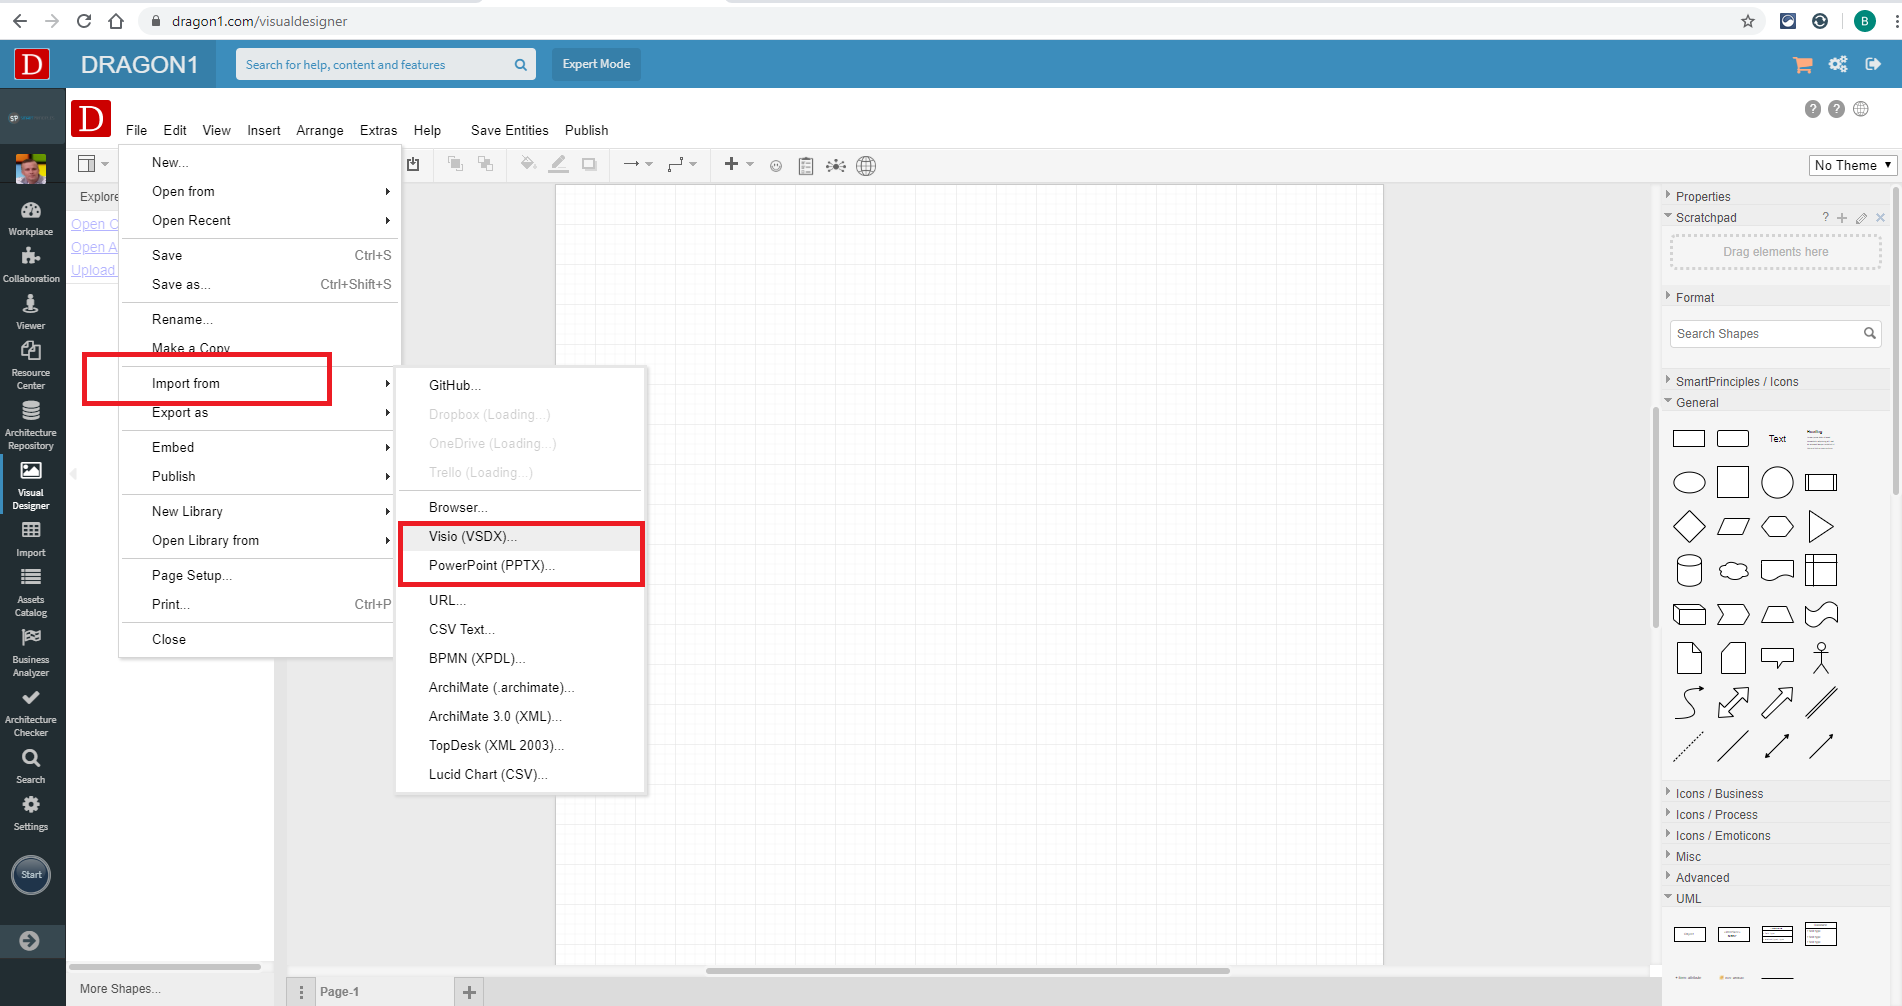 Import a Visio or PowerPoint file in the Visual Designer